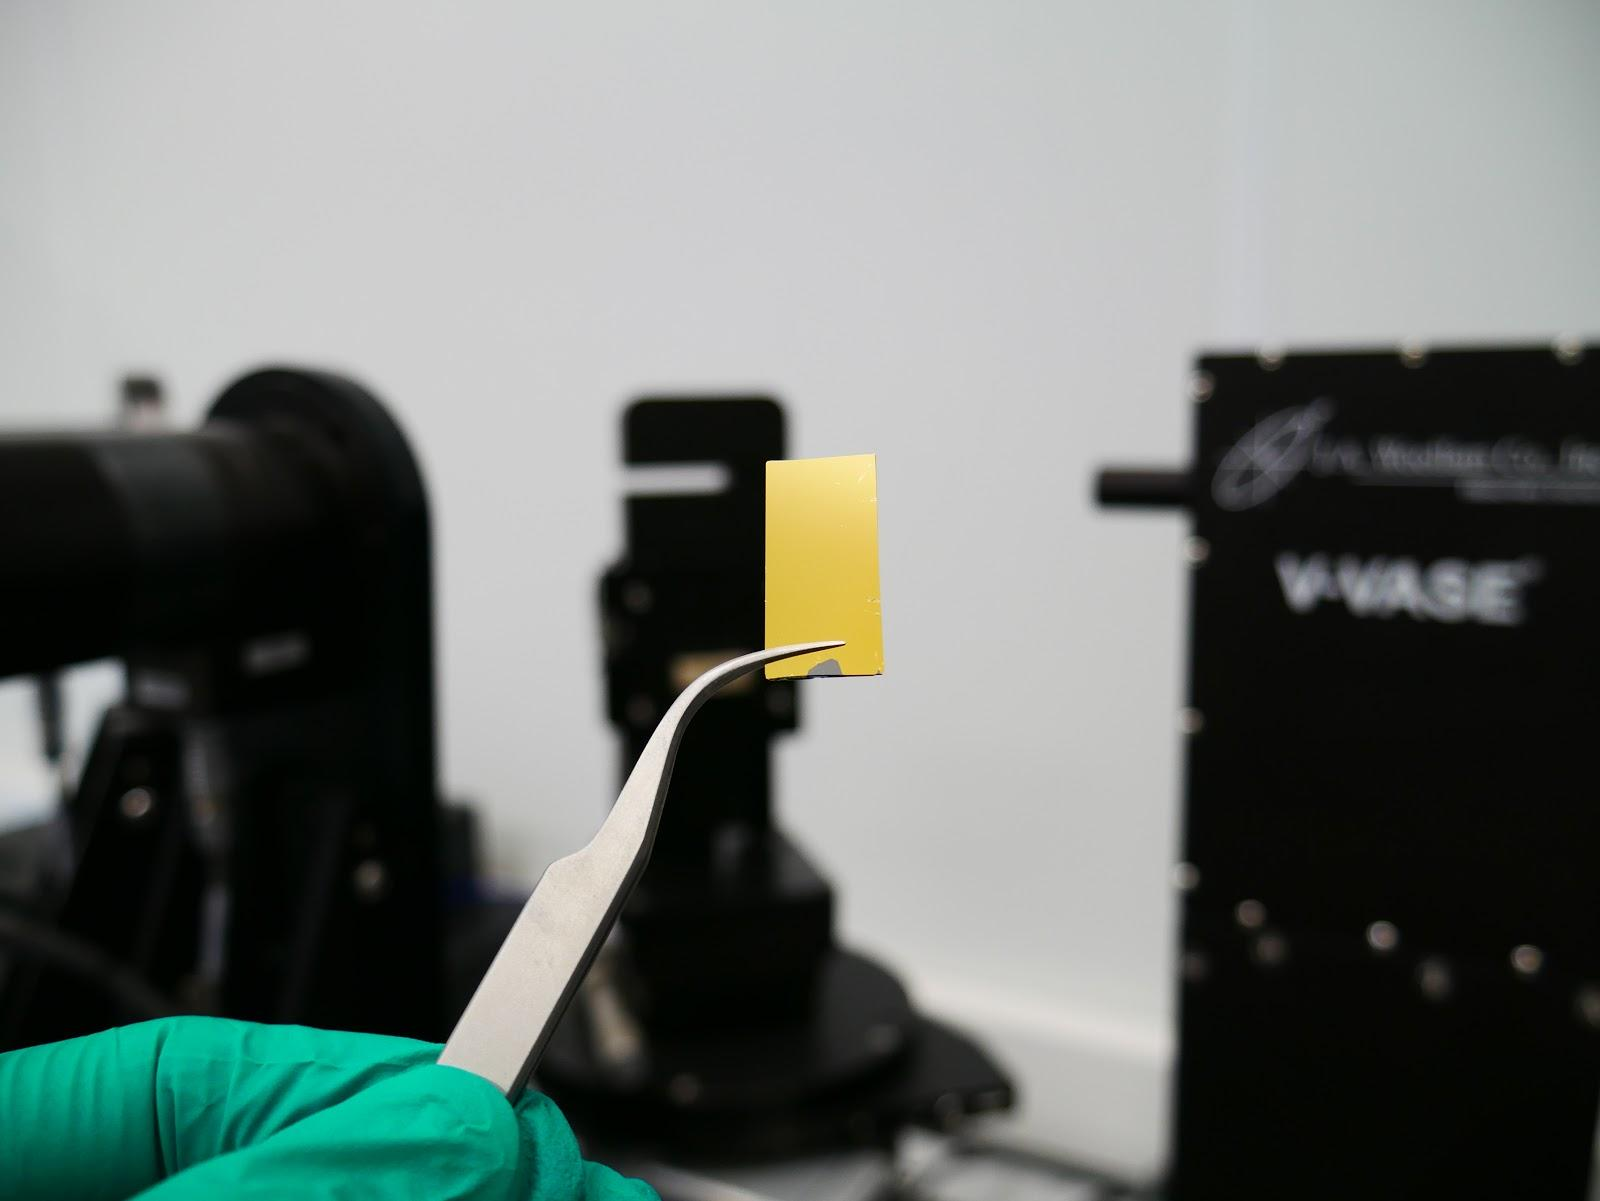 Preparation of a thin gold film sample for spectroscopic ellipsometry measurements